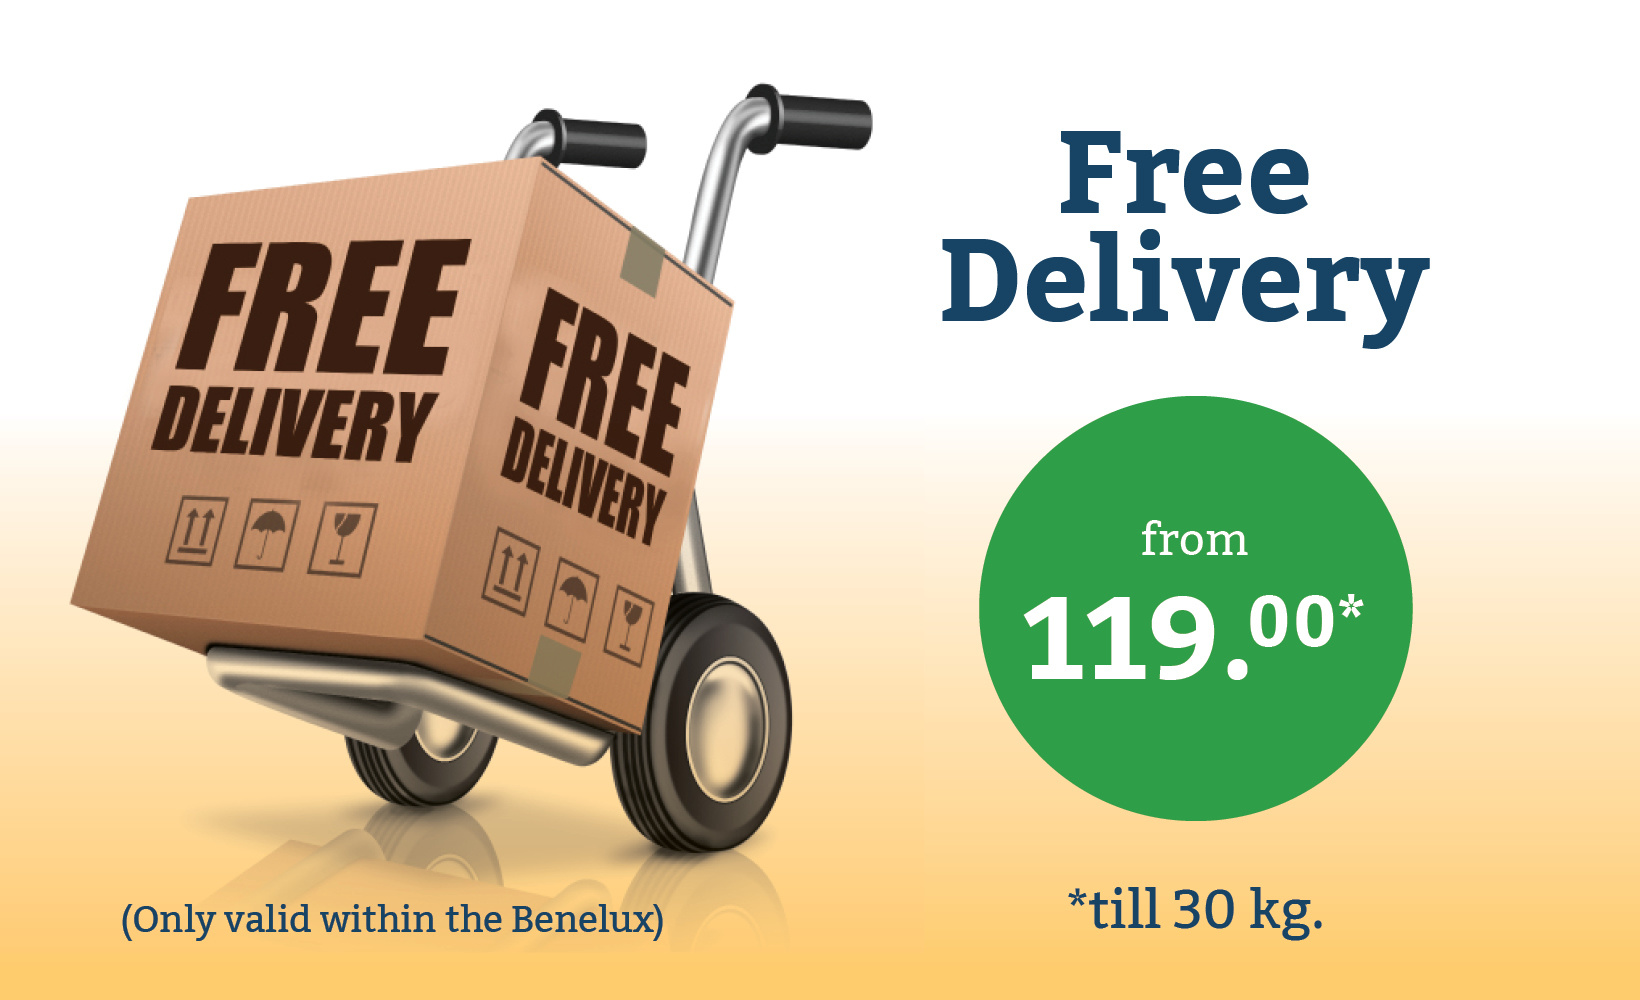 94/5000 Up to a maximum of 30 kg shipped free in the Benelux from 119 euros.